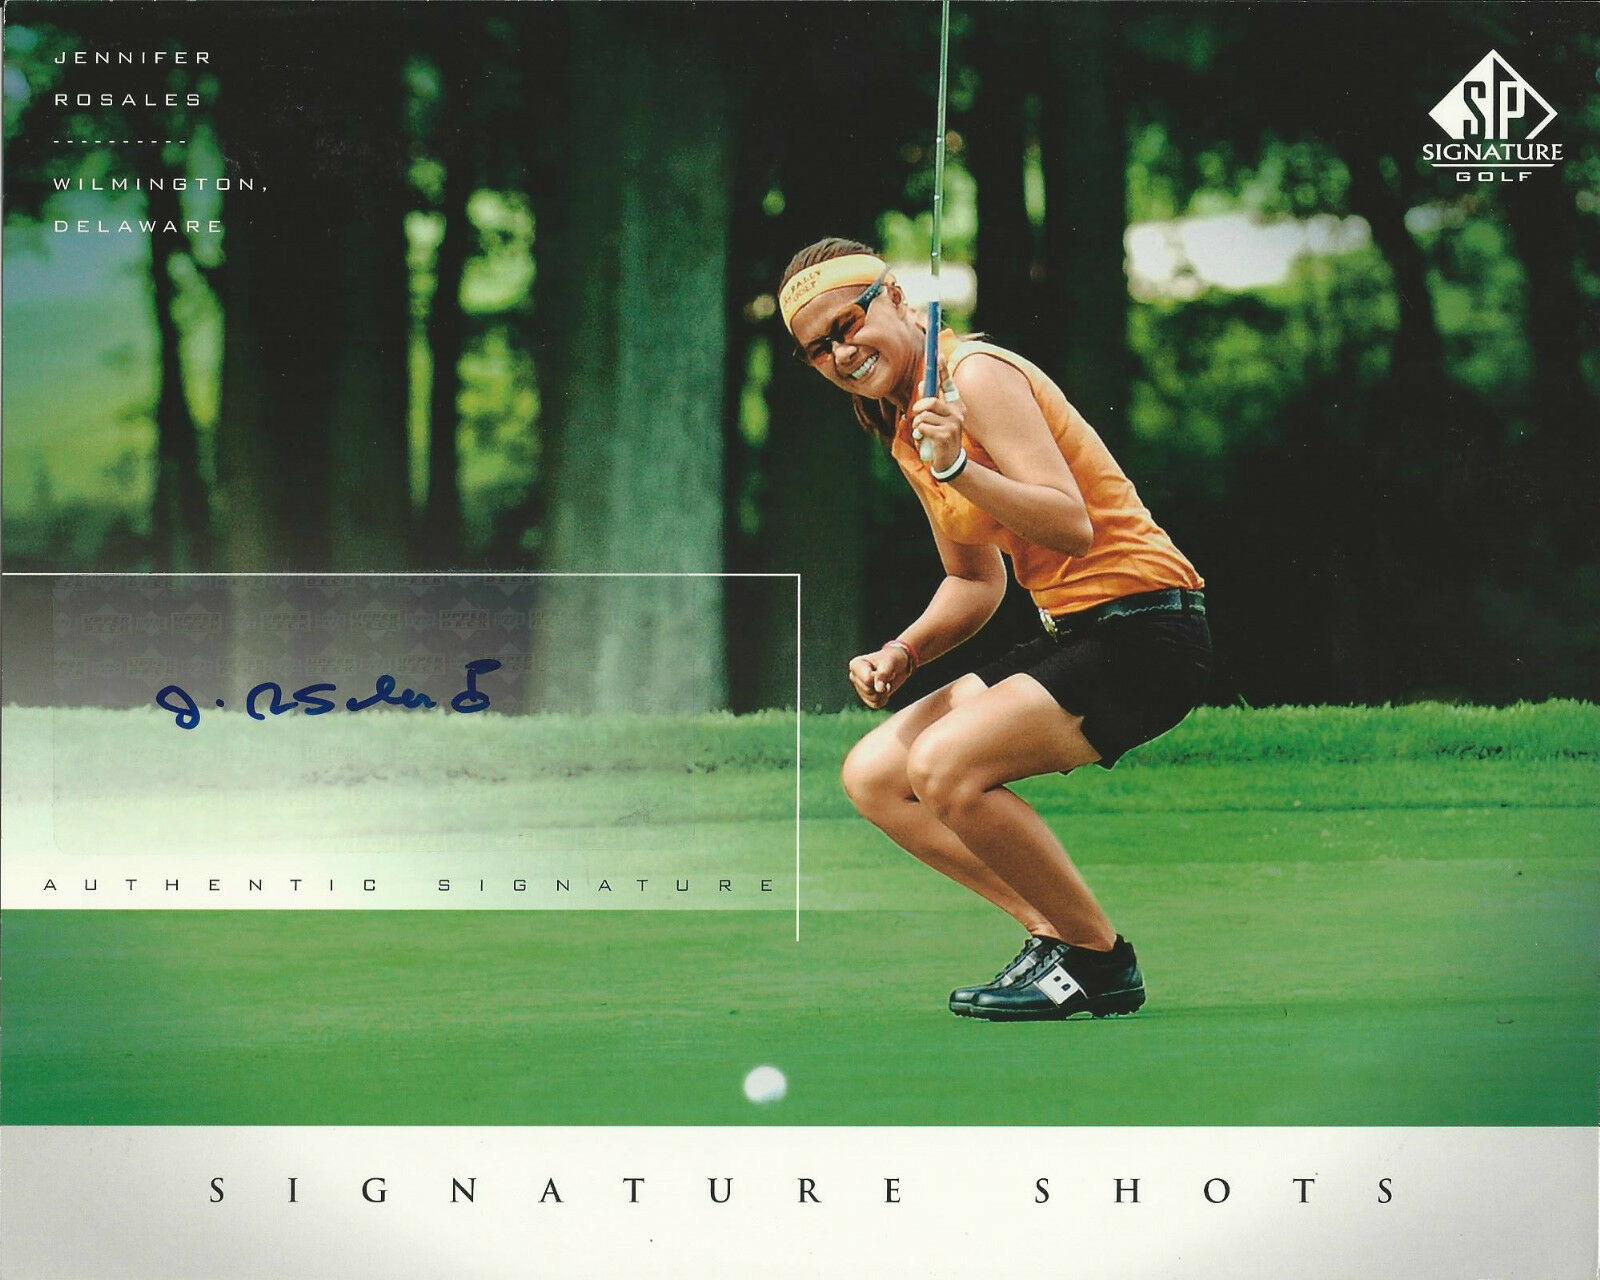 Jennifer Rosales Signed SP Signature Shots 8x10 Photo